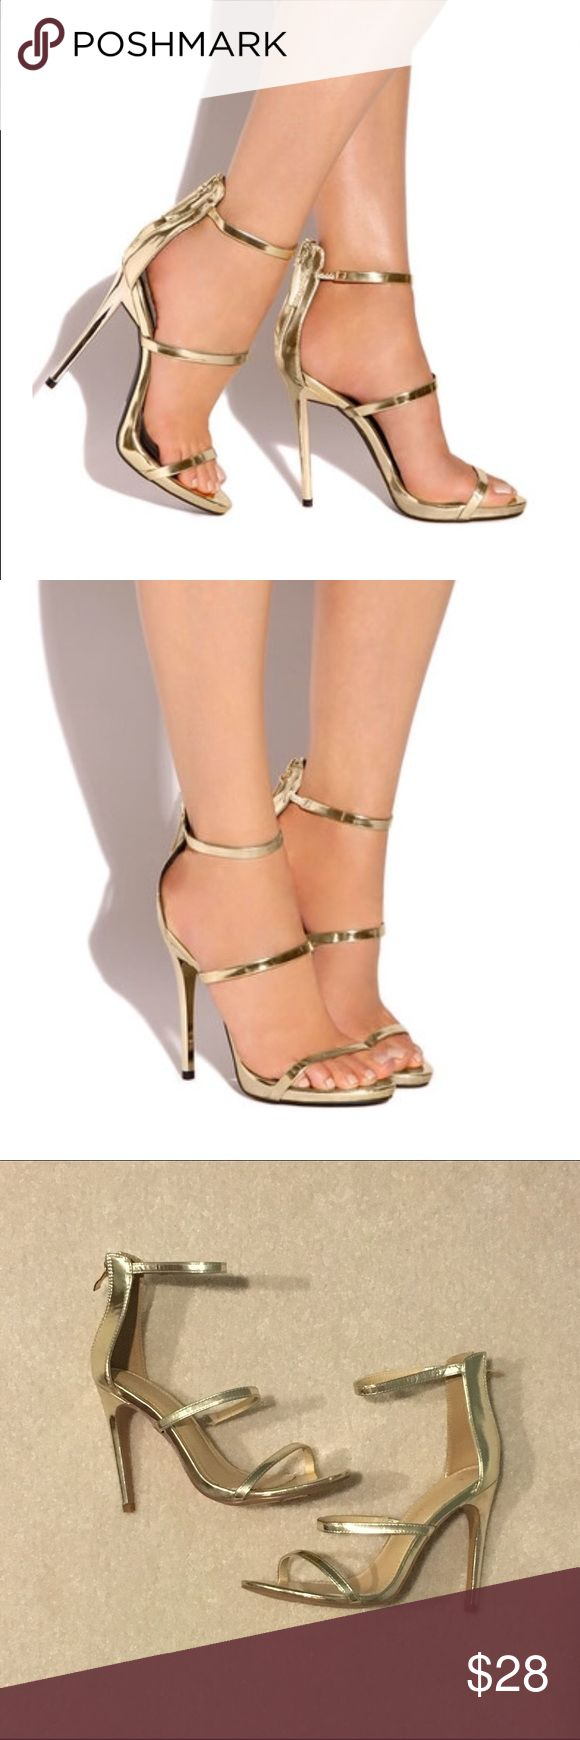 ⚡️sale⚡️Gold straps heels holiday dressy Brand new no shoebox 28 Shoes